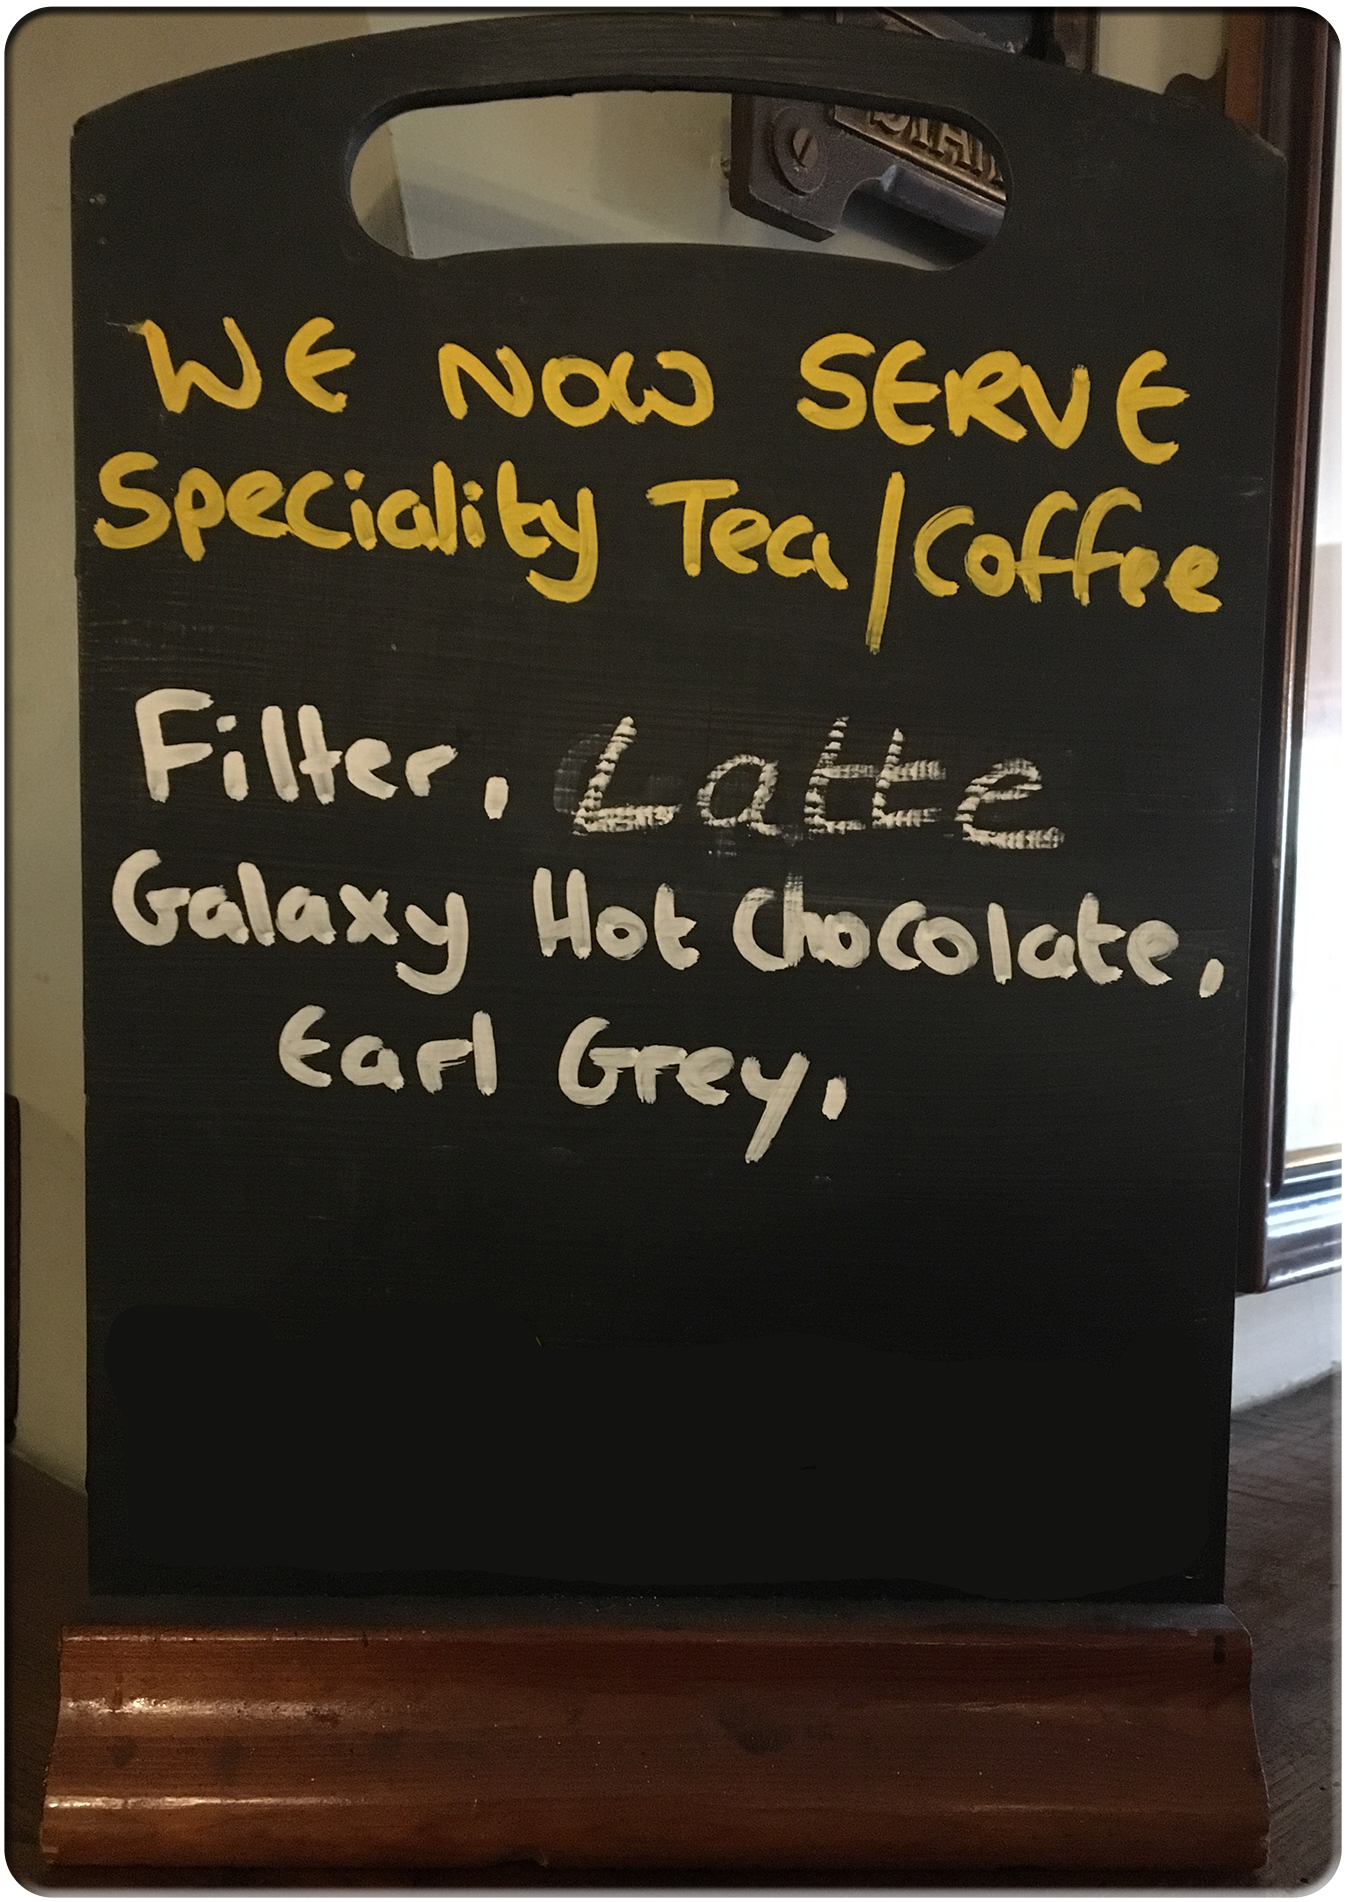 Beaufort Arms Hawkesbury Upton - Speciality Teas and Coffees - Filter, Latte, Galaxy Hot Chocolate, Earl Grey